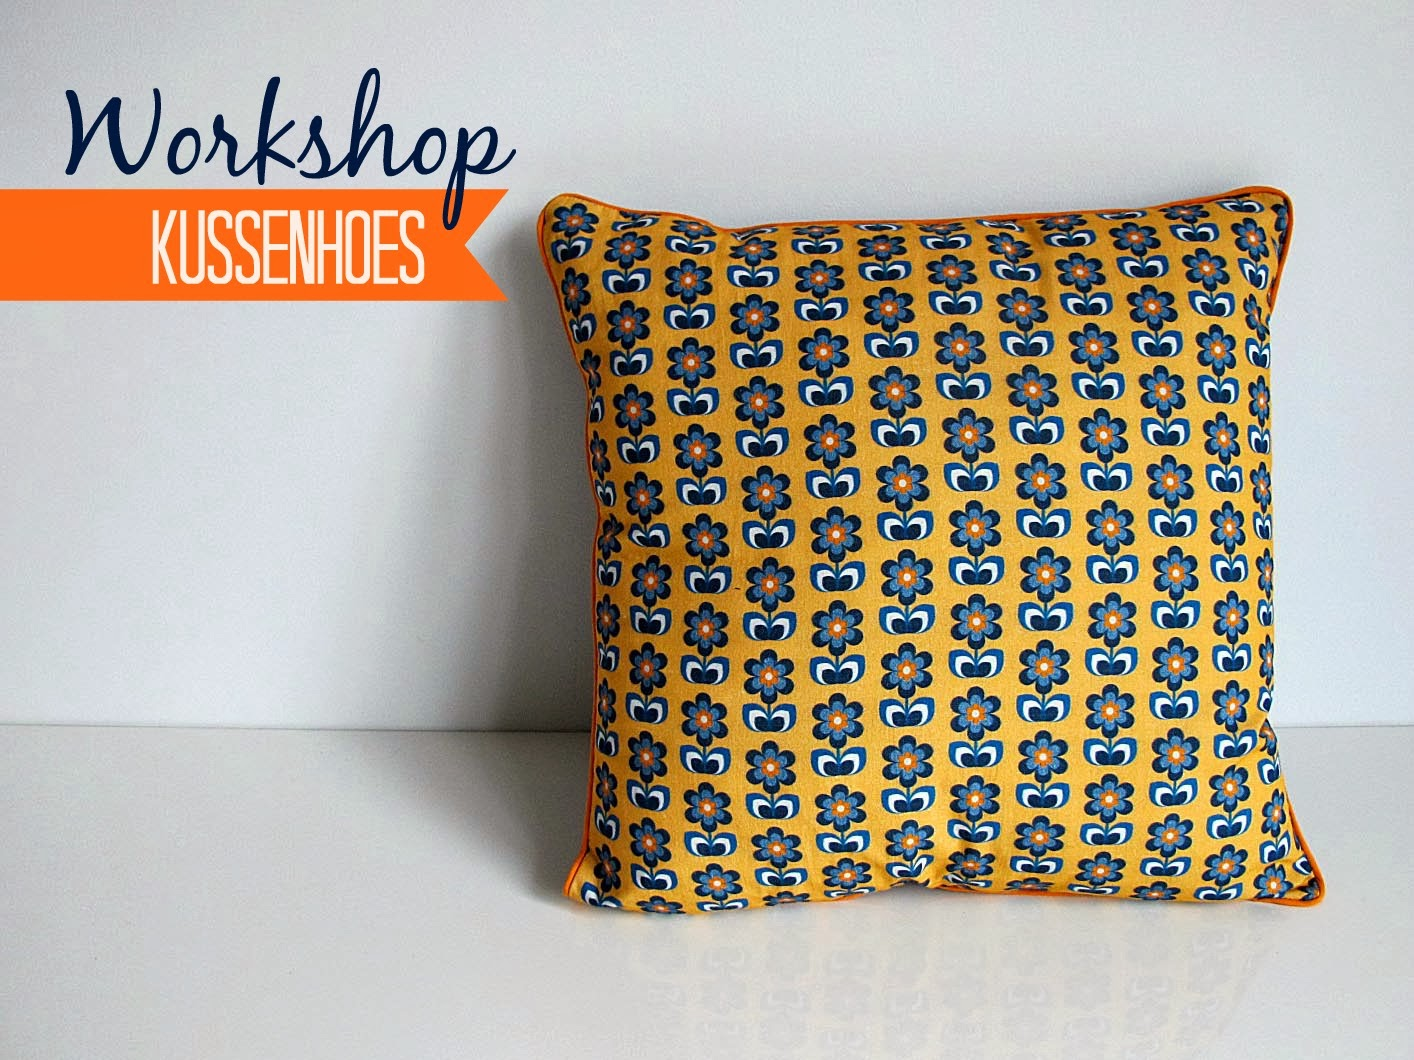 Pieke Wieke: Workshop kussenhoes voor beginners